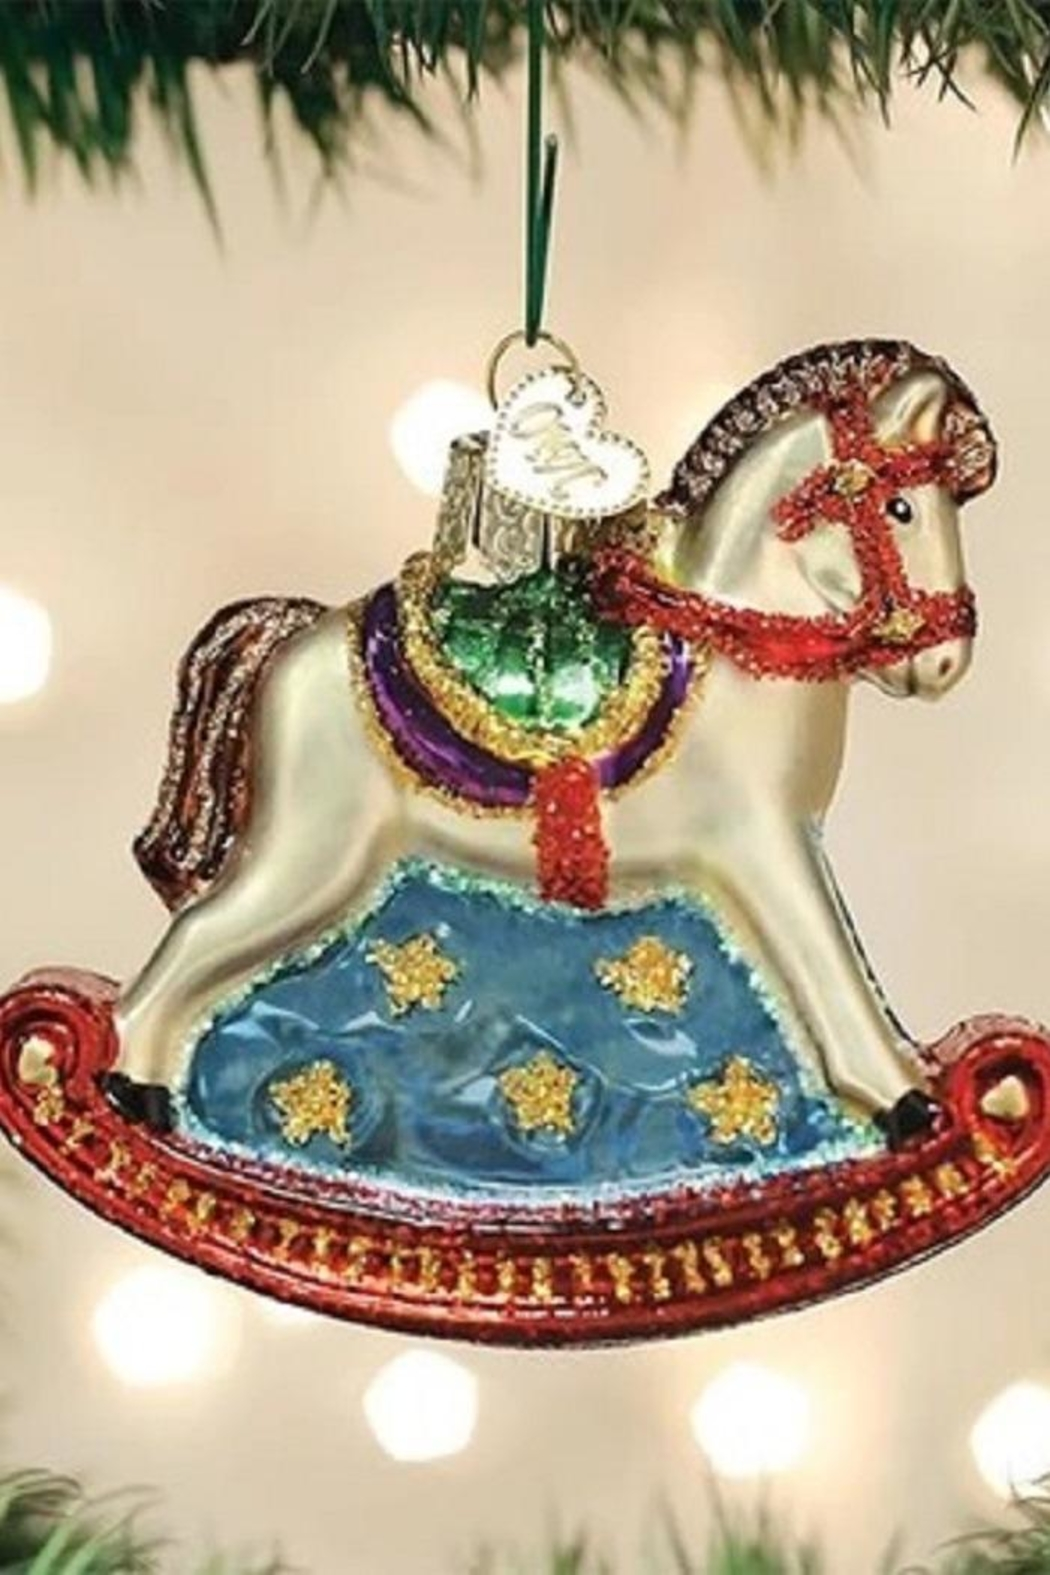 Old World Christmas Rocking Horse Ornament - Main Image